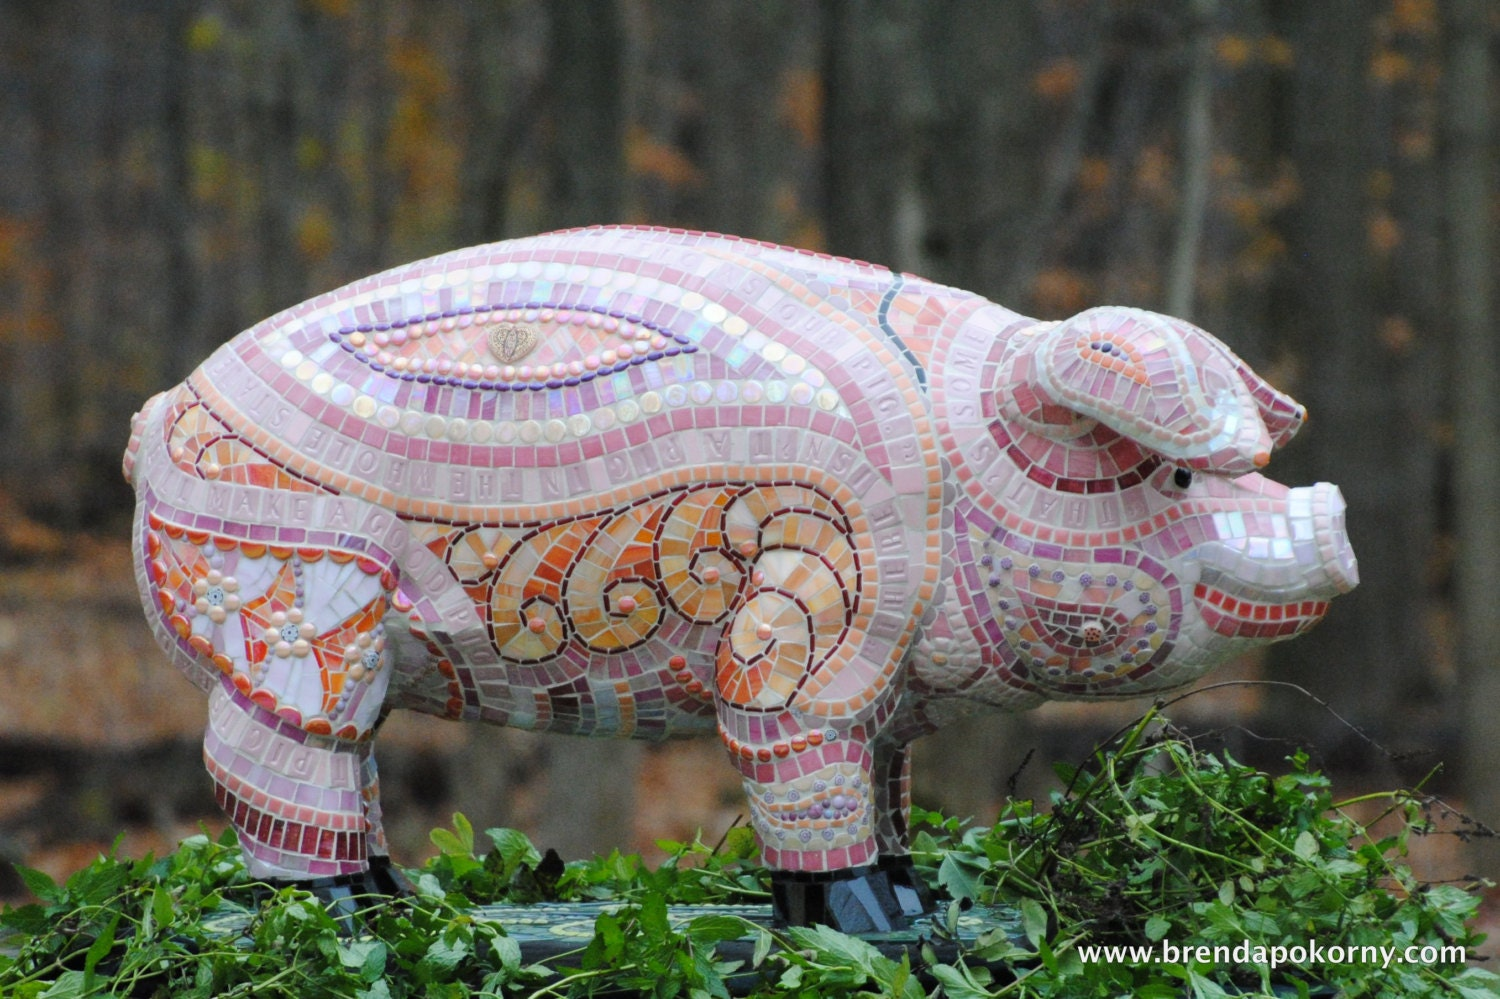 Pig lawn ornament - Some Pig Mosaic Pig Garden Statue One Of A Kind Mosaic On Cement By Brenda Pokorny